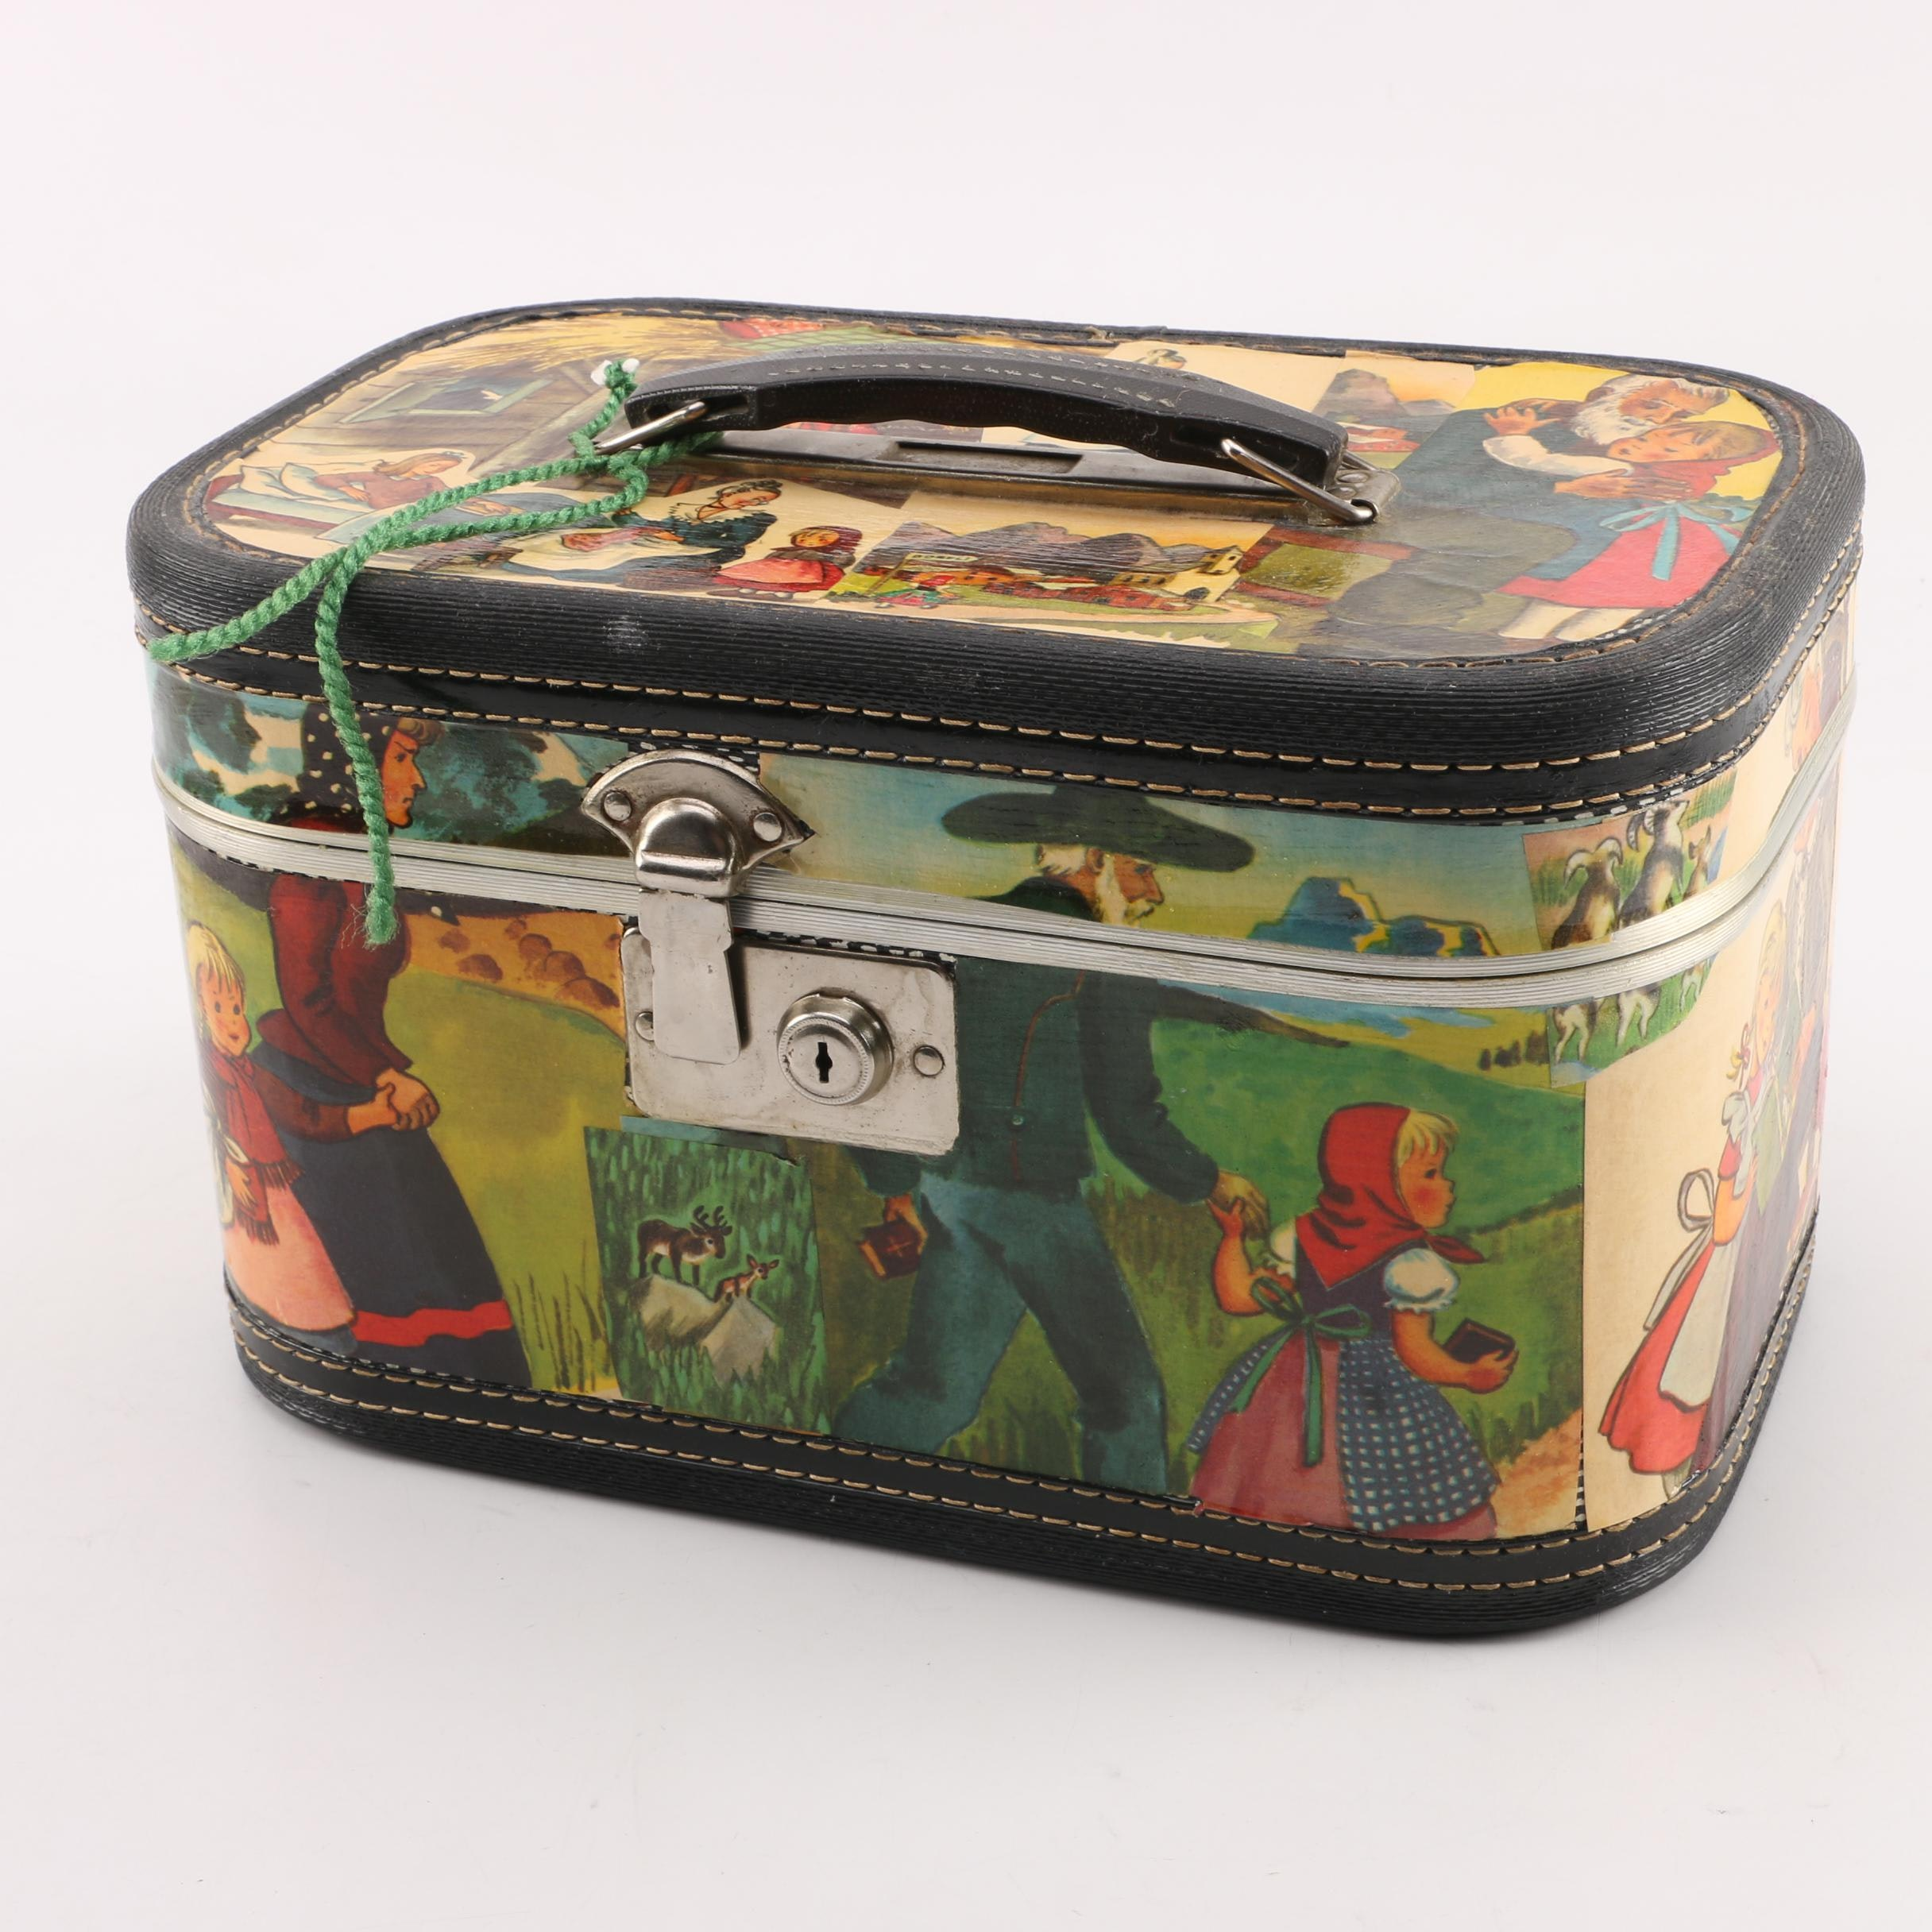 """Heidi"" Hand-Decorated Cosmetic Carry-On Travel Case"